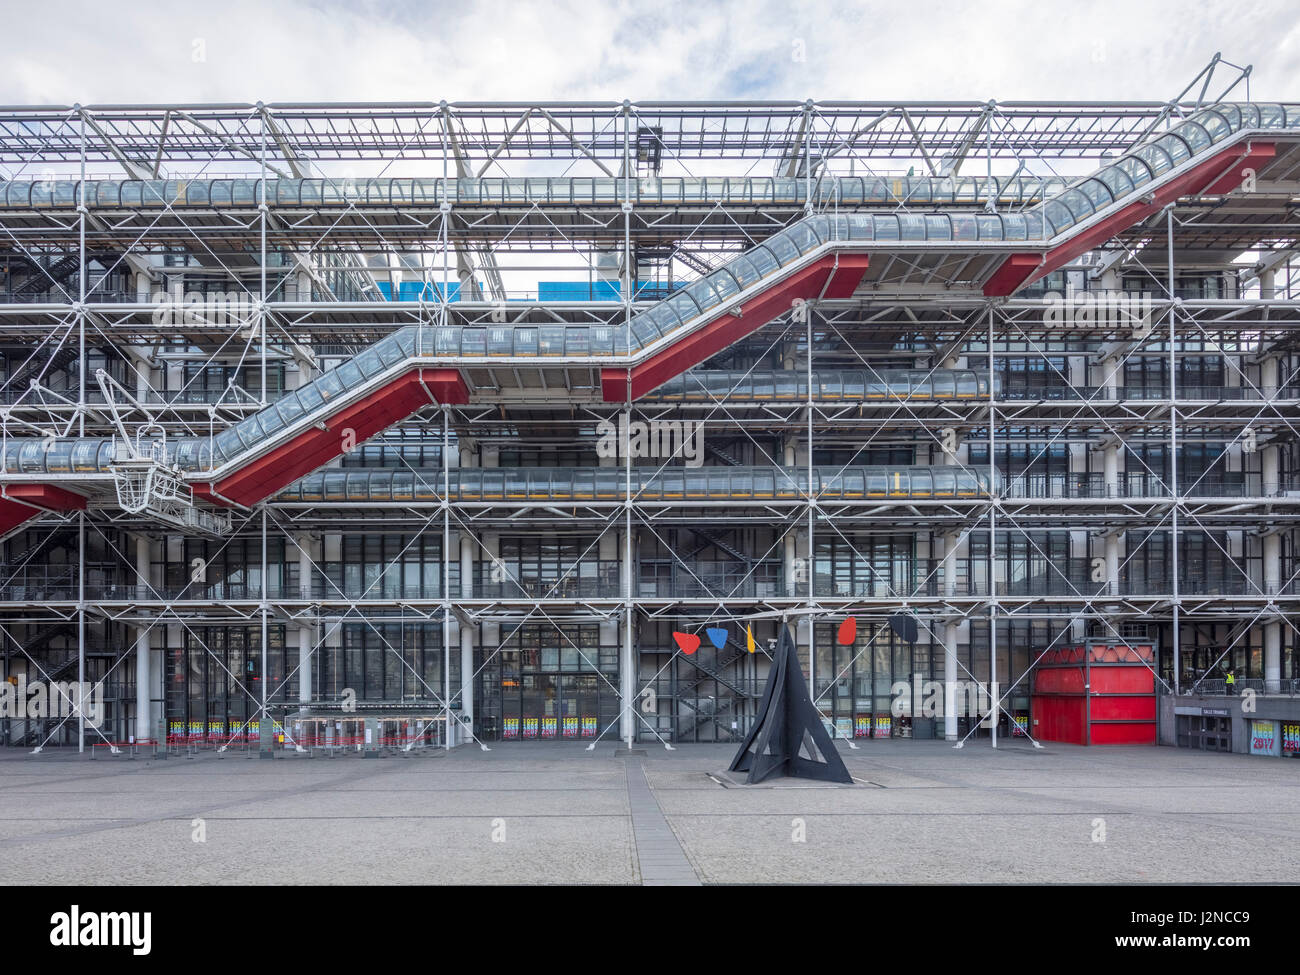 The Pompidou Center, Paris, France - Stock Image